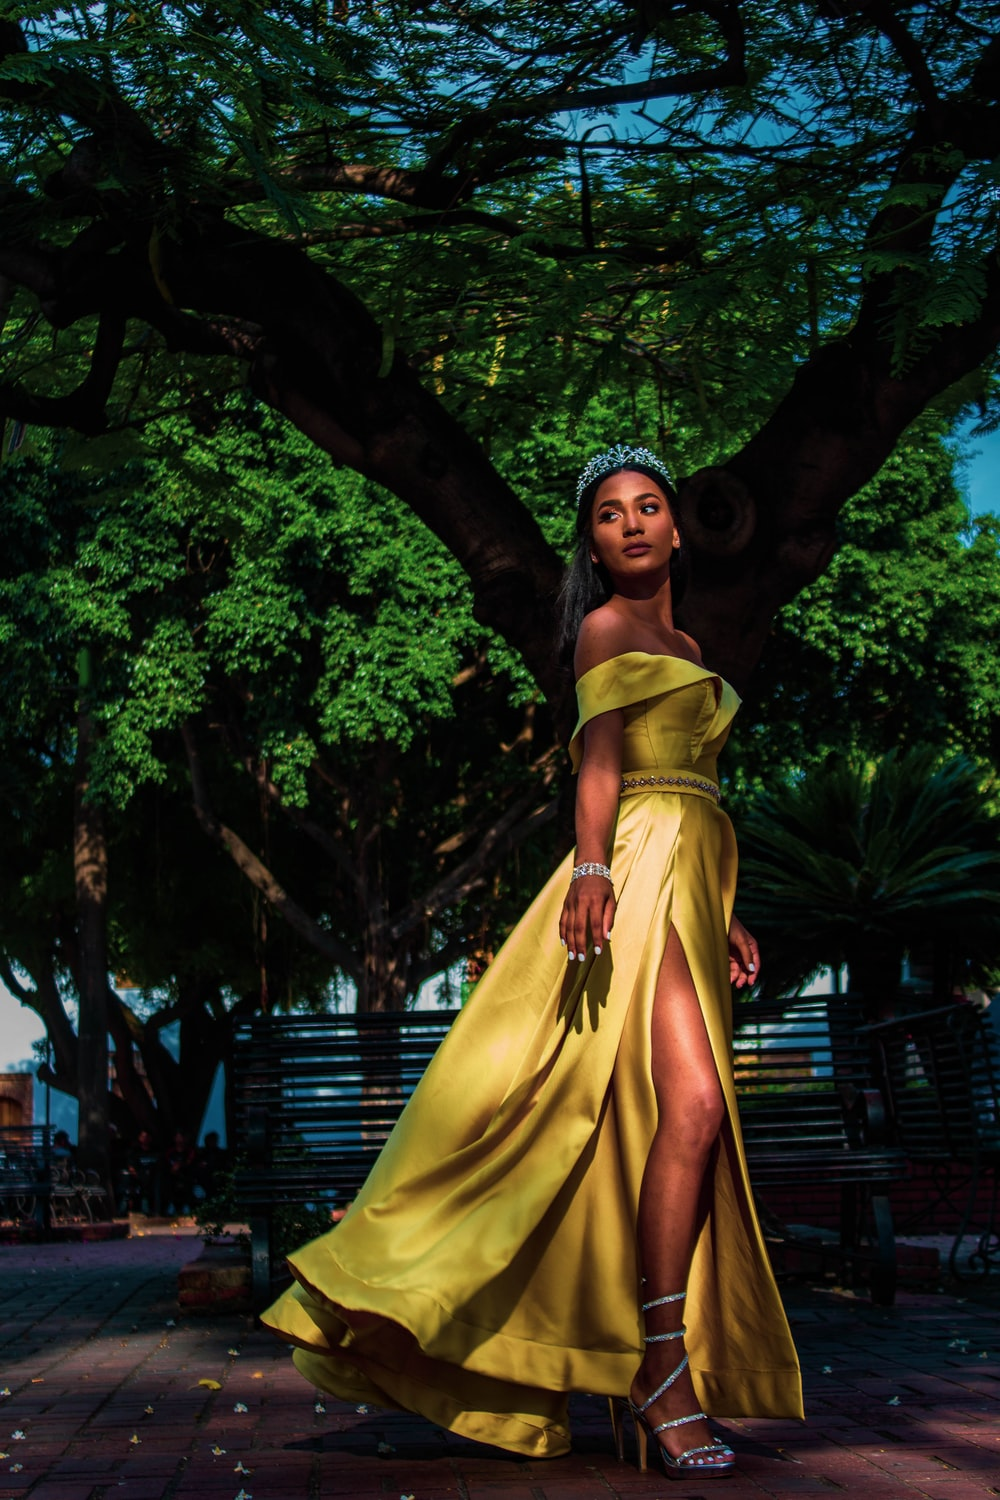 woman wearing yellow off-shoulder silt dress with silver tiara